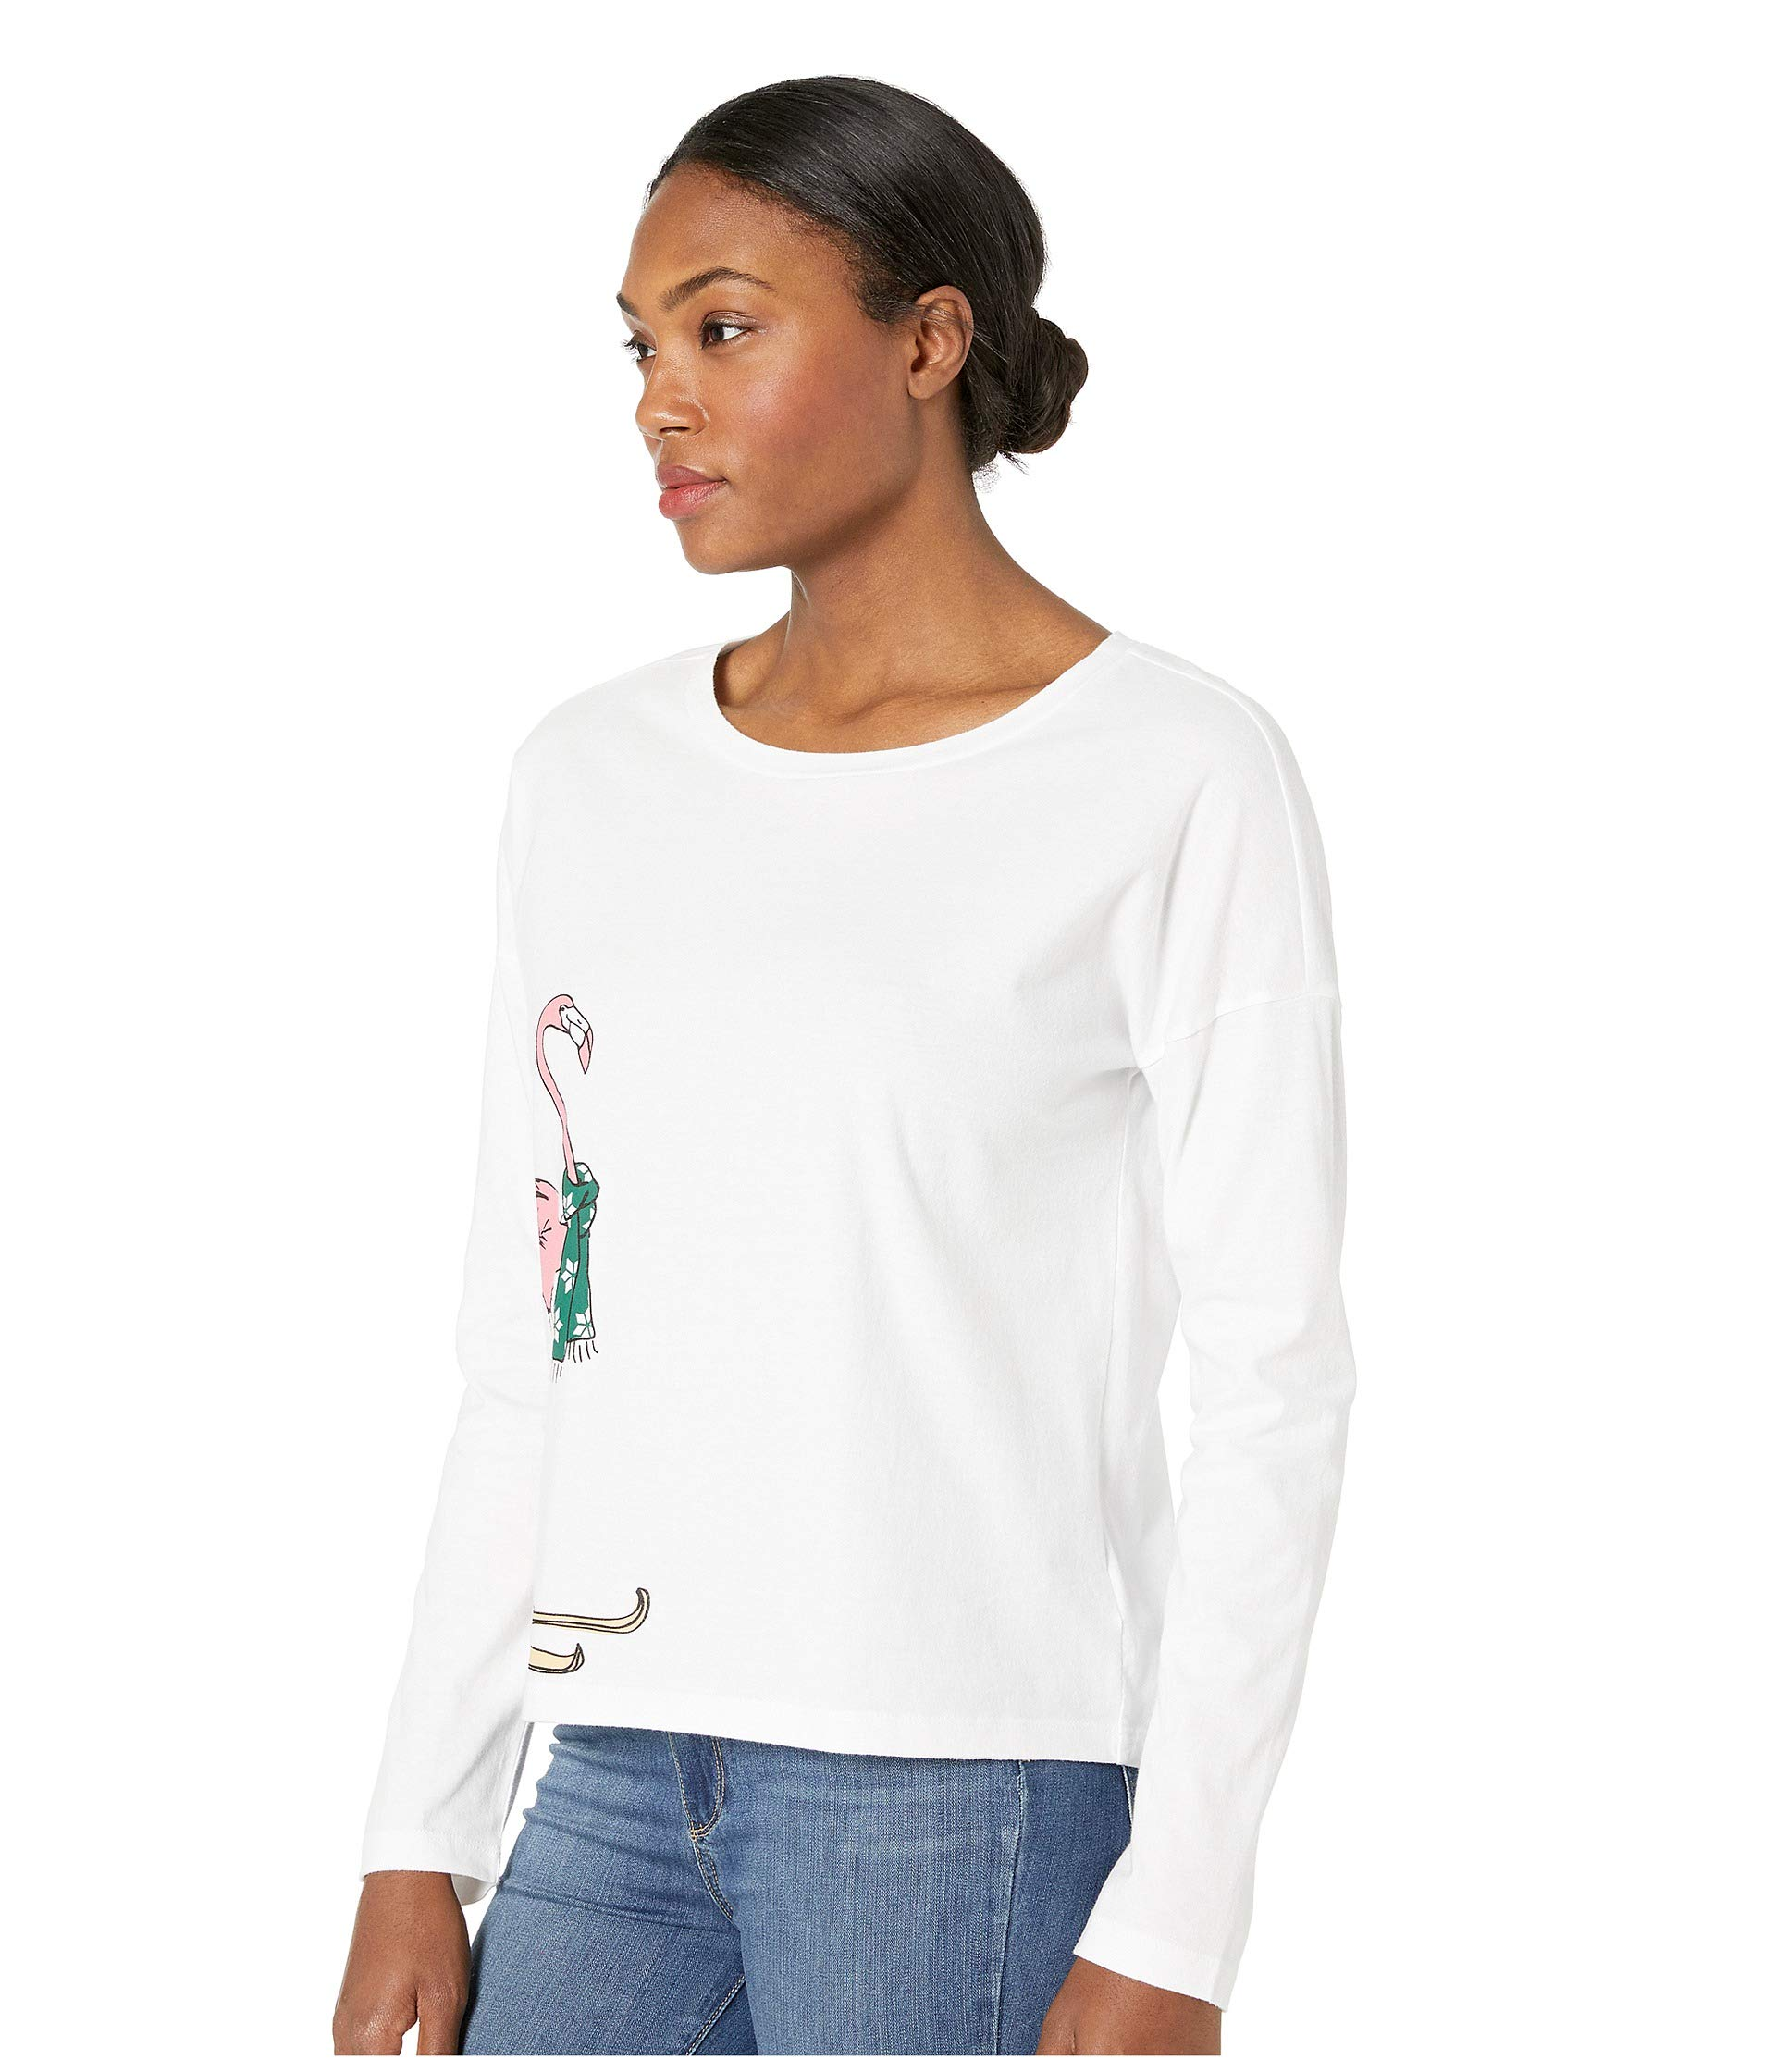 Life Snuggle Good Is White Relaxed Long Up Sleeve Cloud r6Er1wq